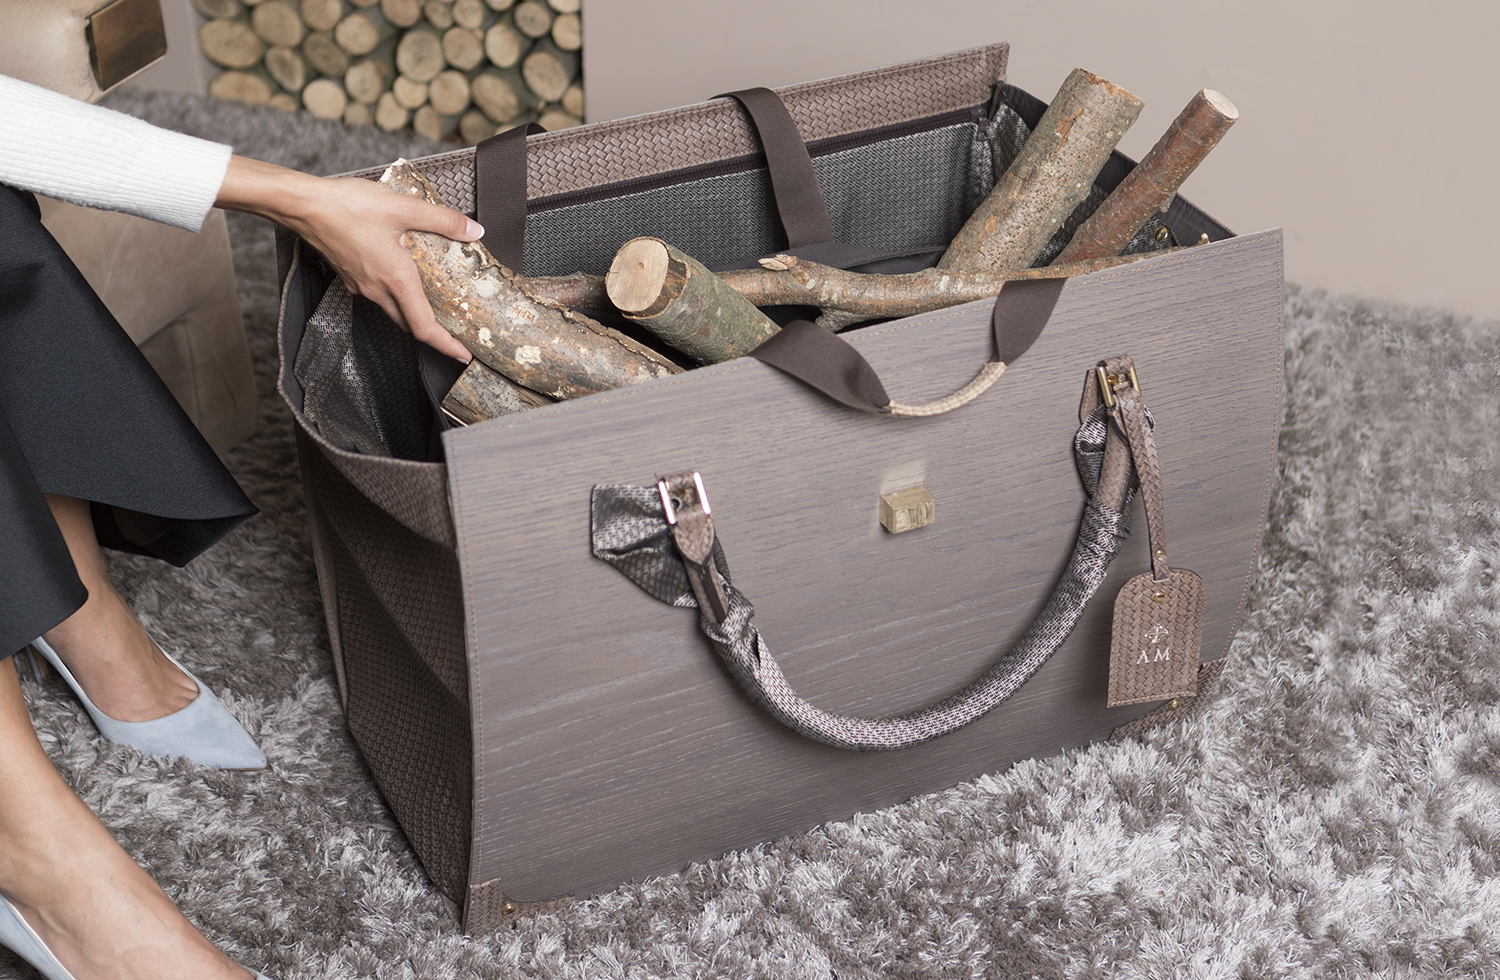 Indoor Log Holder Bag Lisamina Amerigo Milano